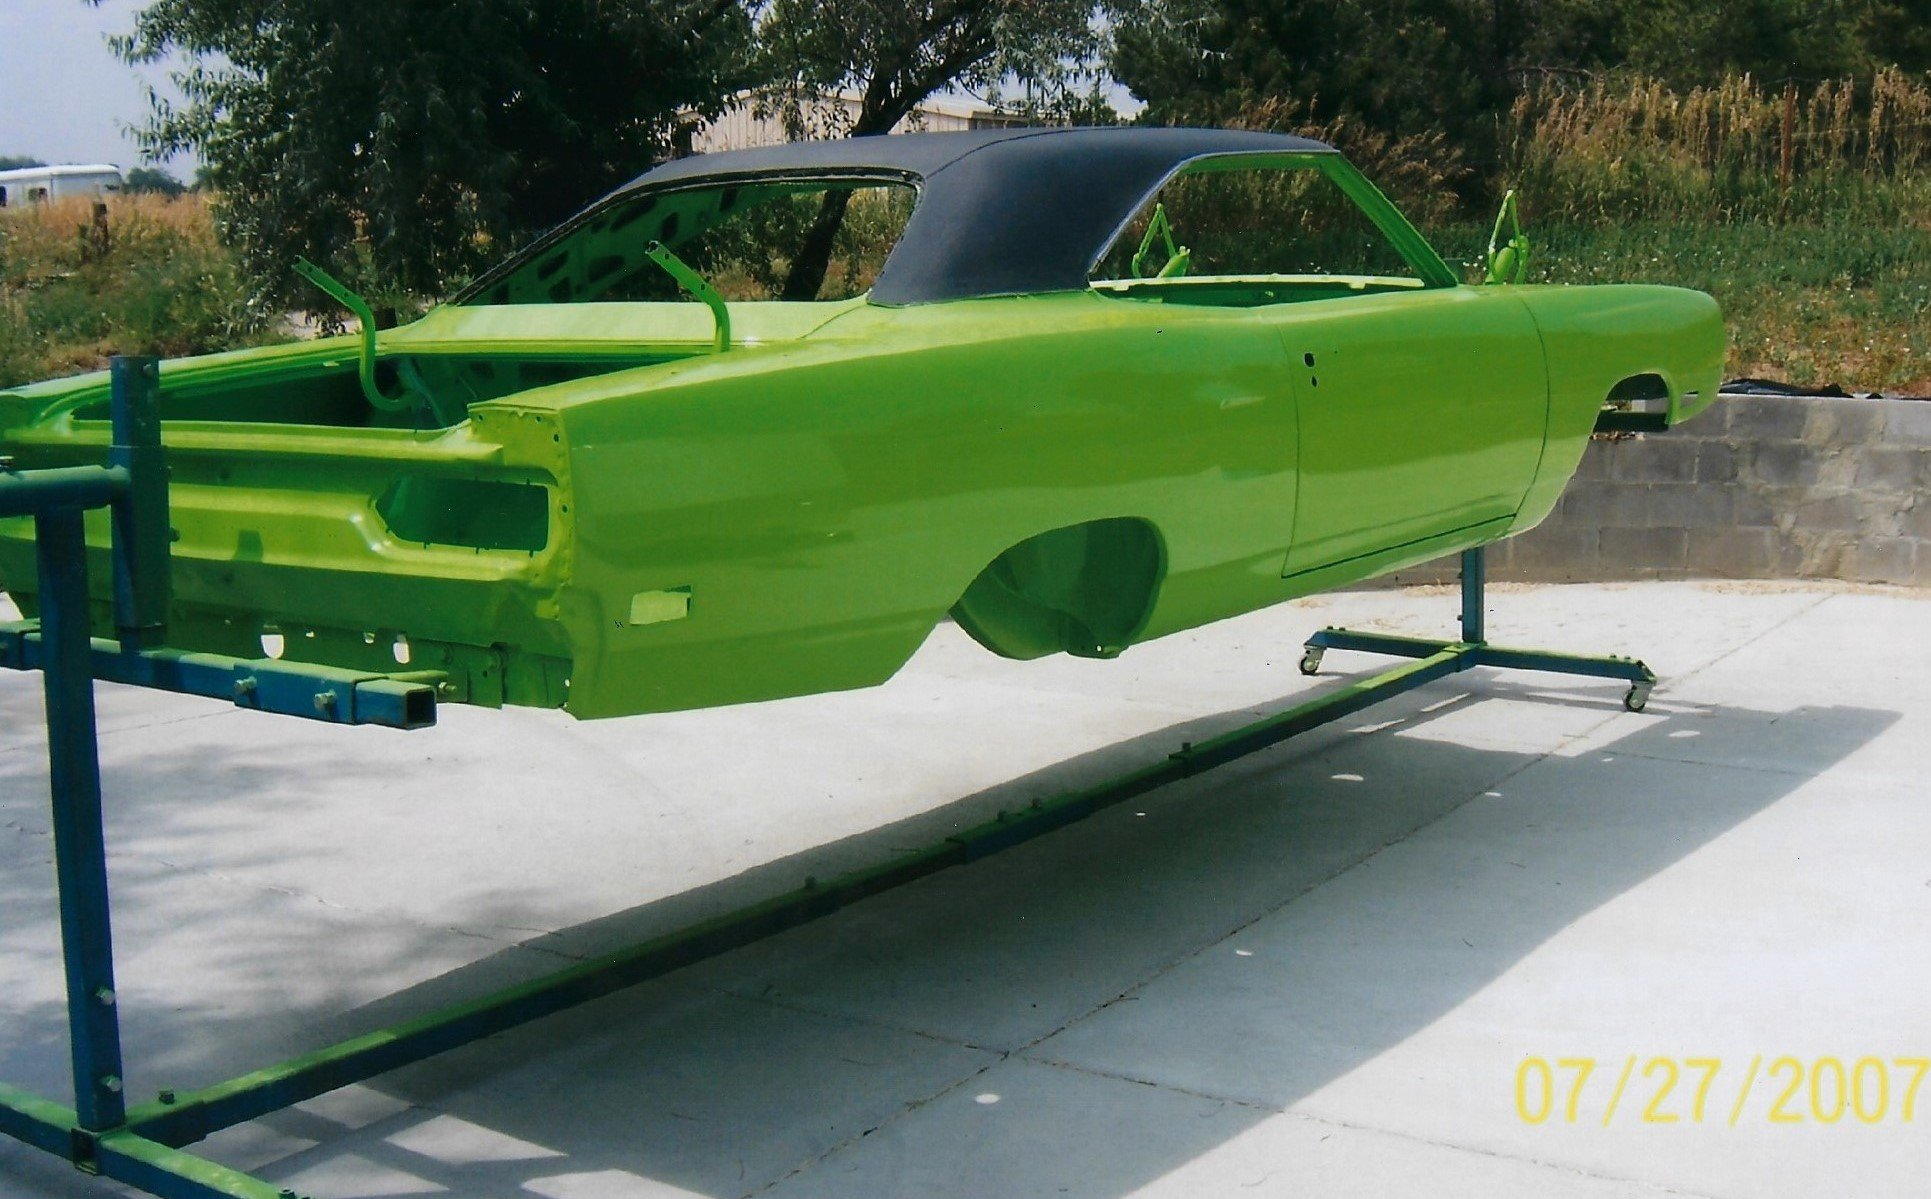 1970 Plymouth Road Runner Superbird - Concours winner!! For Sale (picture 6 of 6)